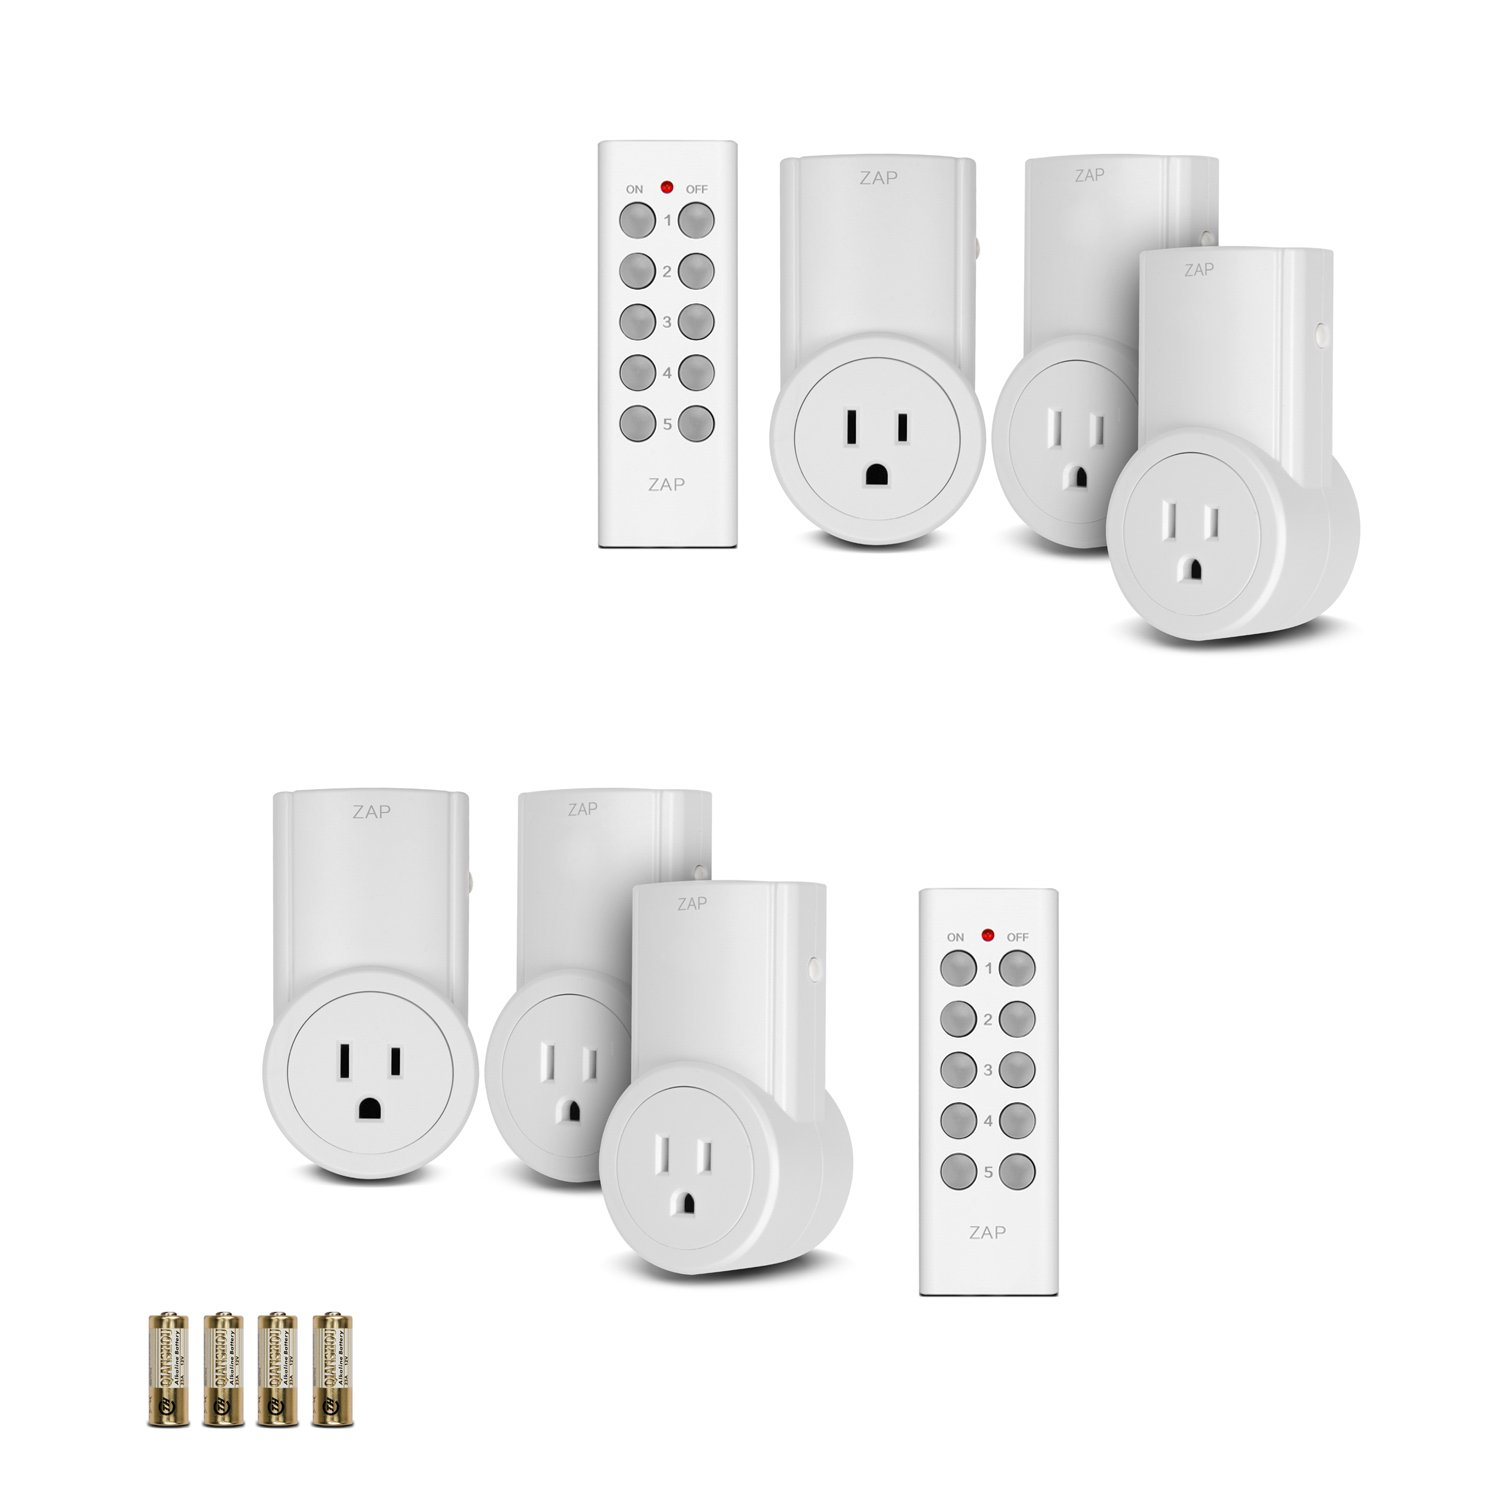 Etekcity® 2x 3 Pack (6 Outlets) Wireless Remote Control Outlet Plug Auto-programmable Function Light Switch (Extra Batteries included) Newest/smaller version with a 100ft range. Works through doors, floors and walls. Great for the immobile (elderly, peop